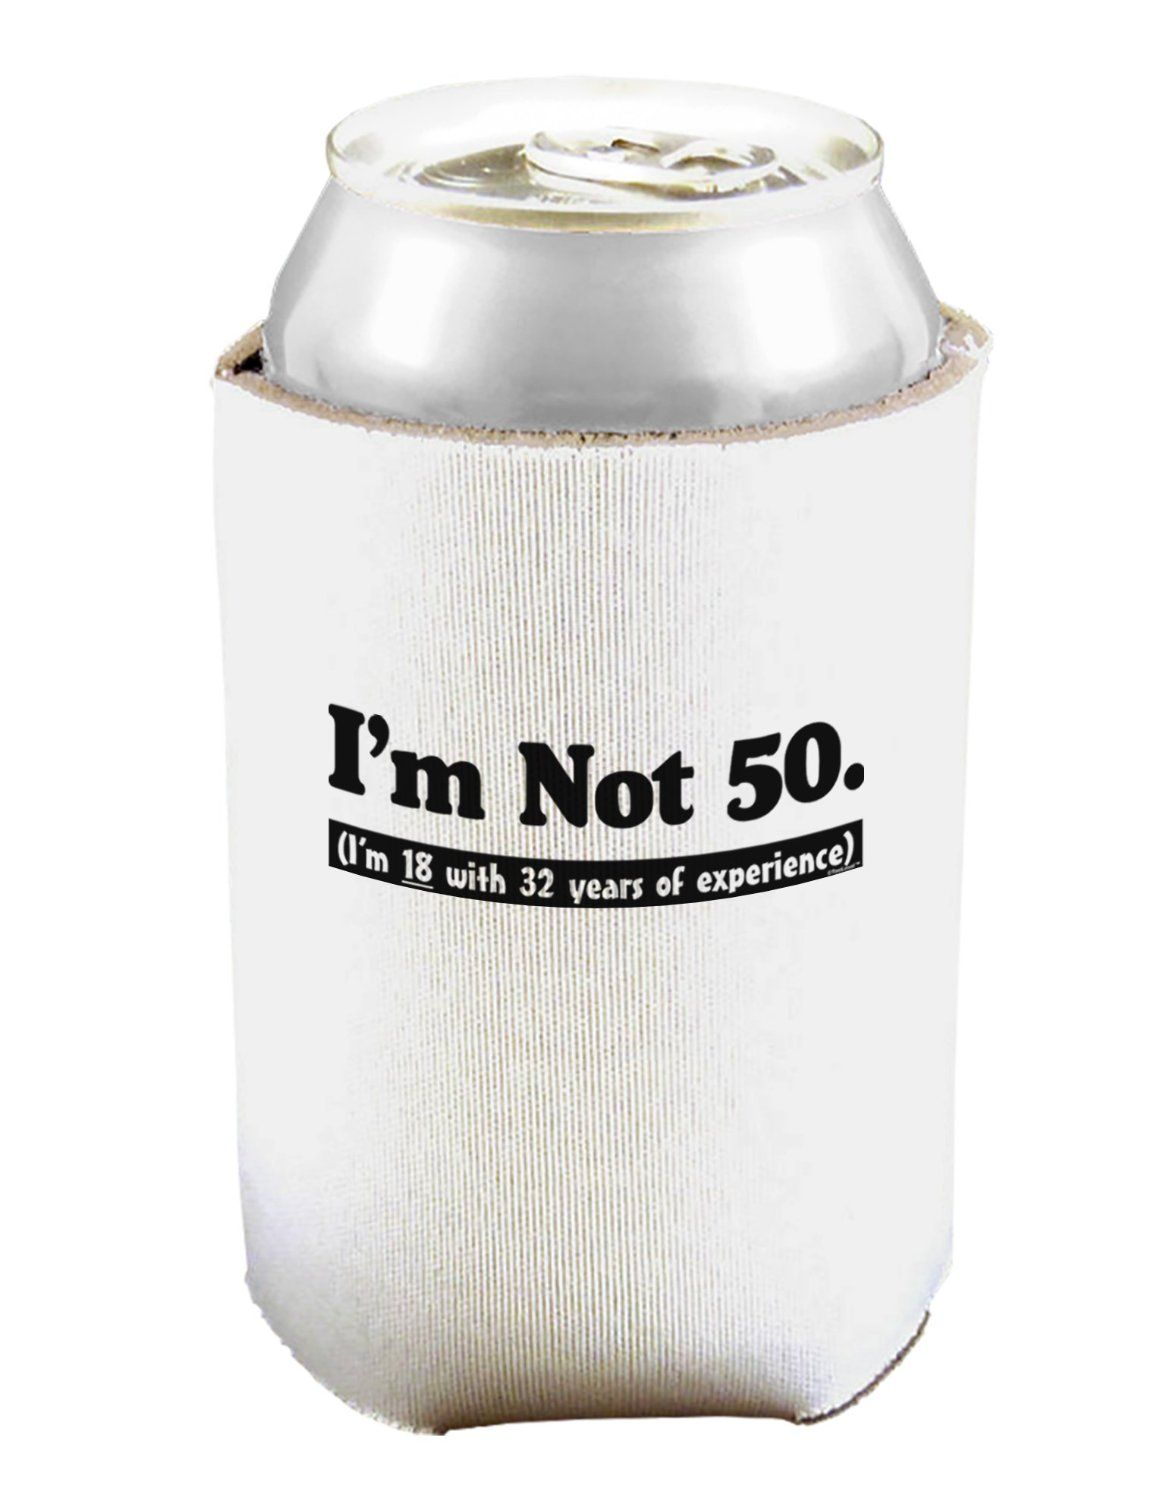 50th birthday koozies that captures the essence of age in